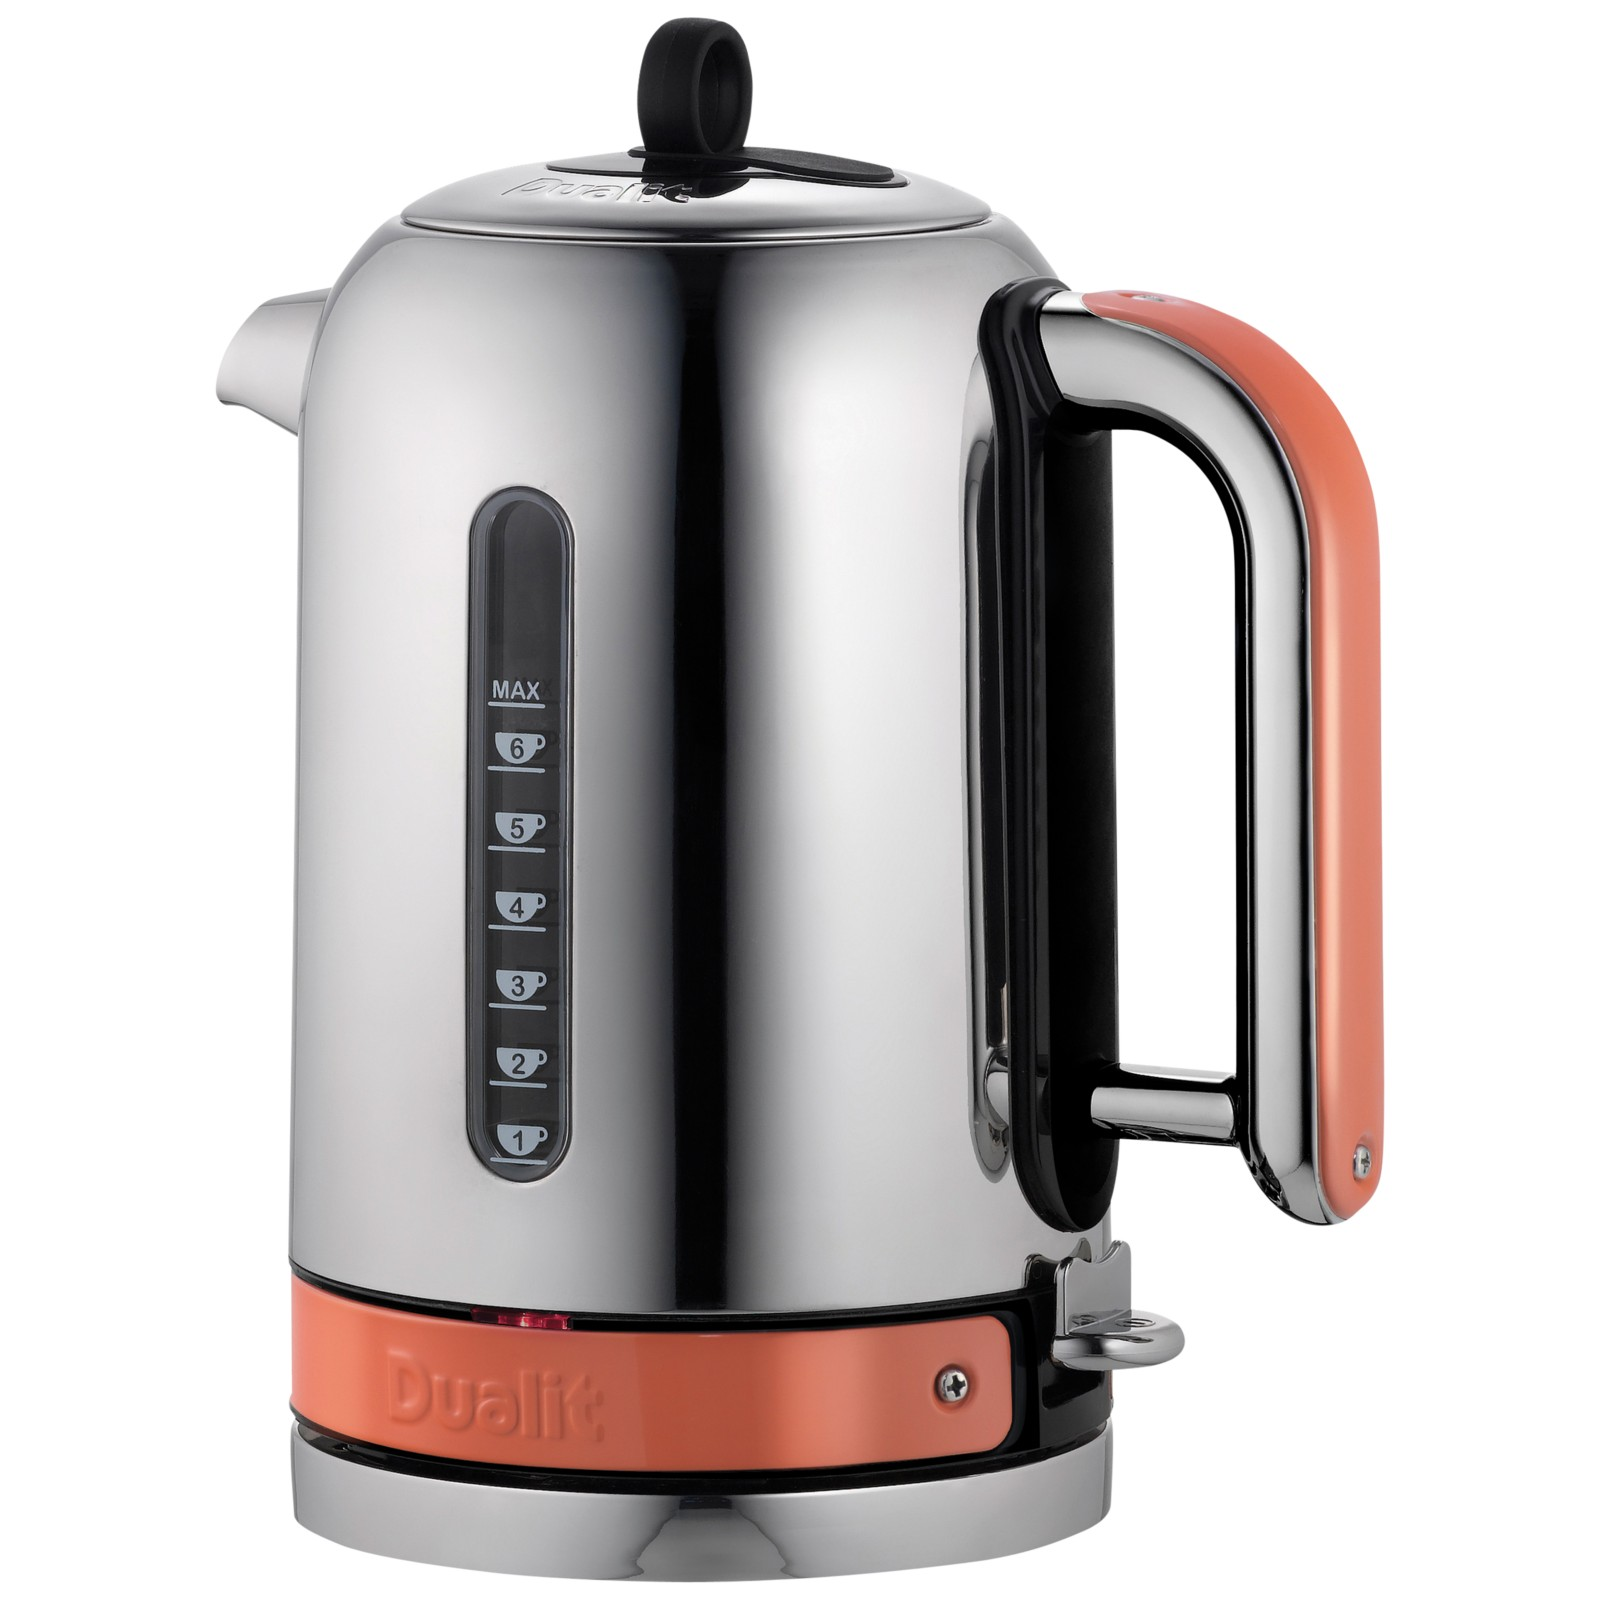 Dualit Made to Order Classic Kettle Stainless Steel/Salmon Pink Gloss